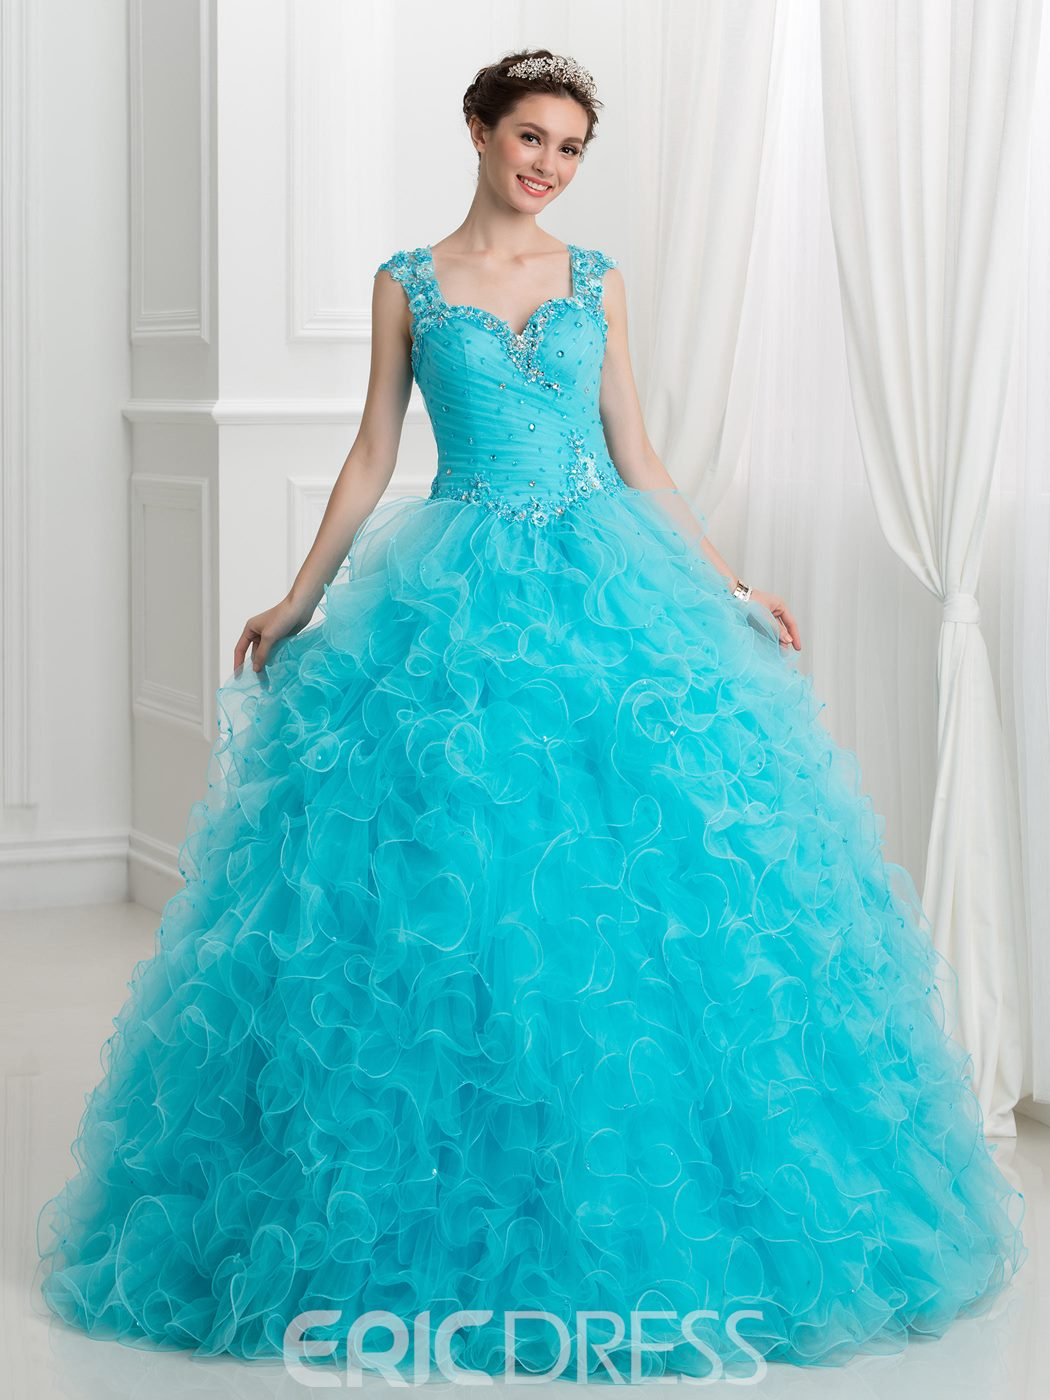 33b26cbc54 Ericdress Sweetheart Appliques Beaded Ball Gown Quinceanera Dress ...